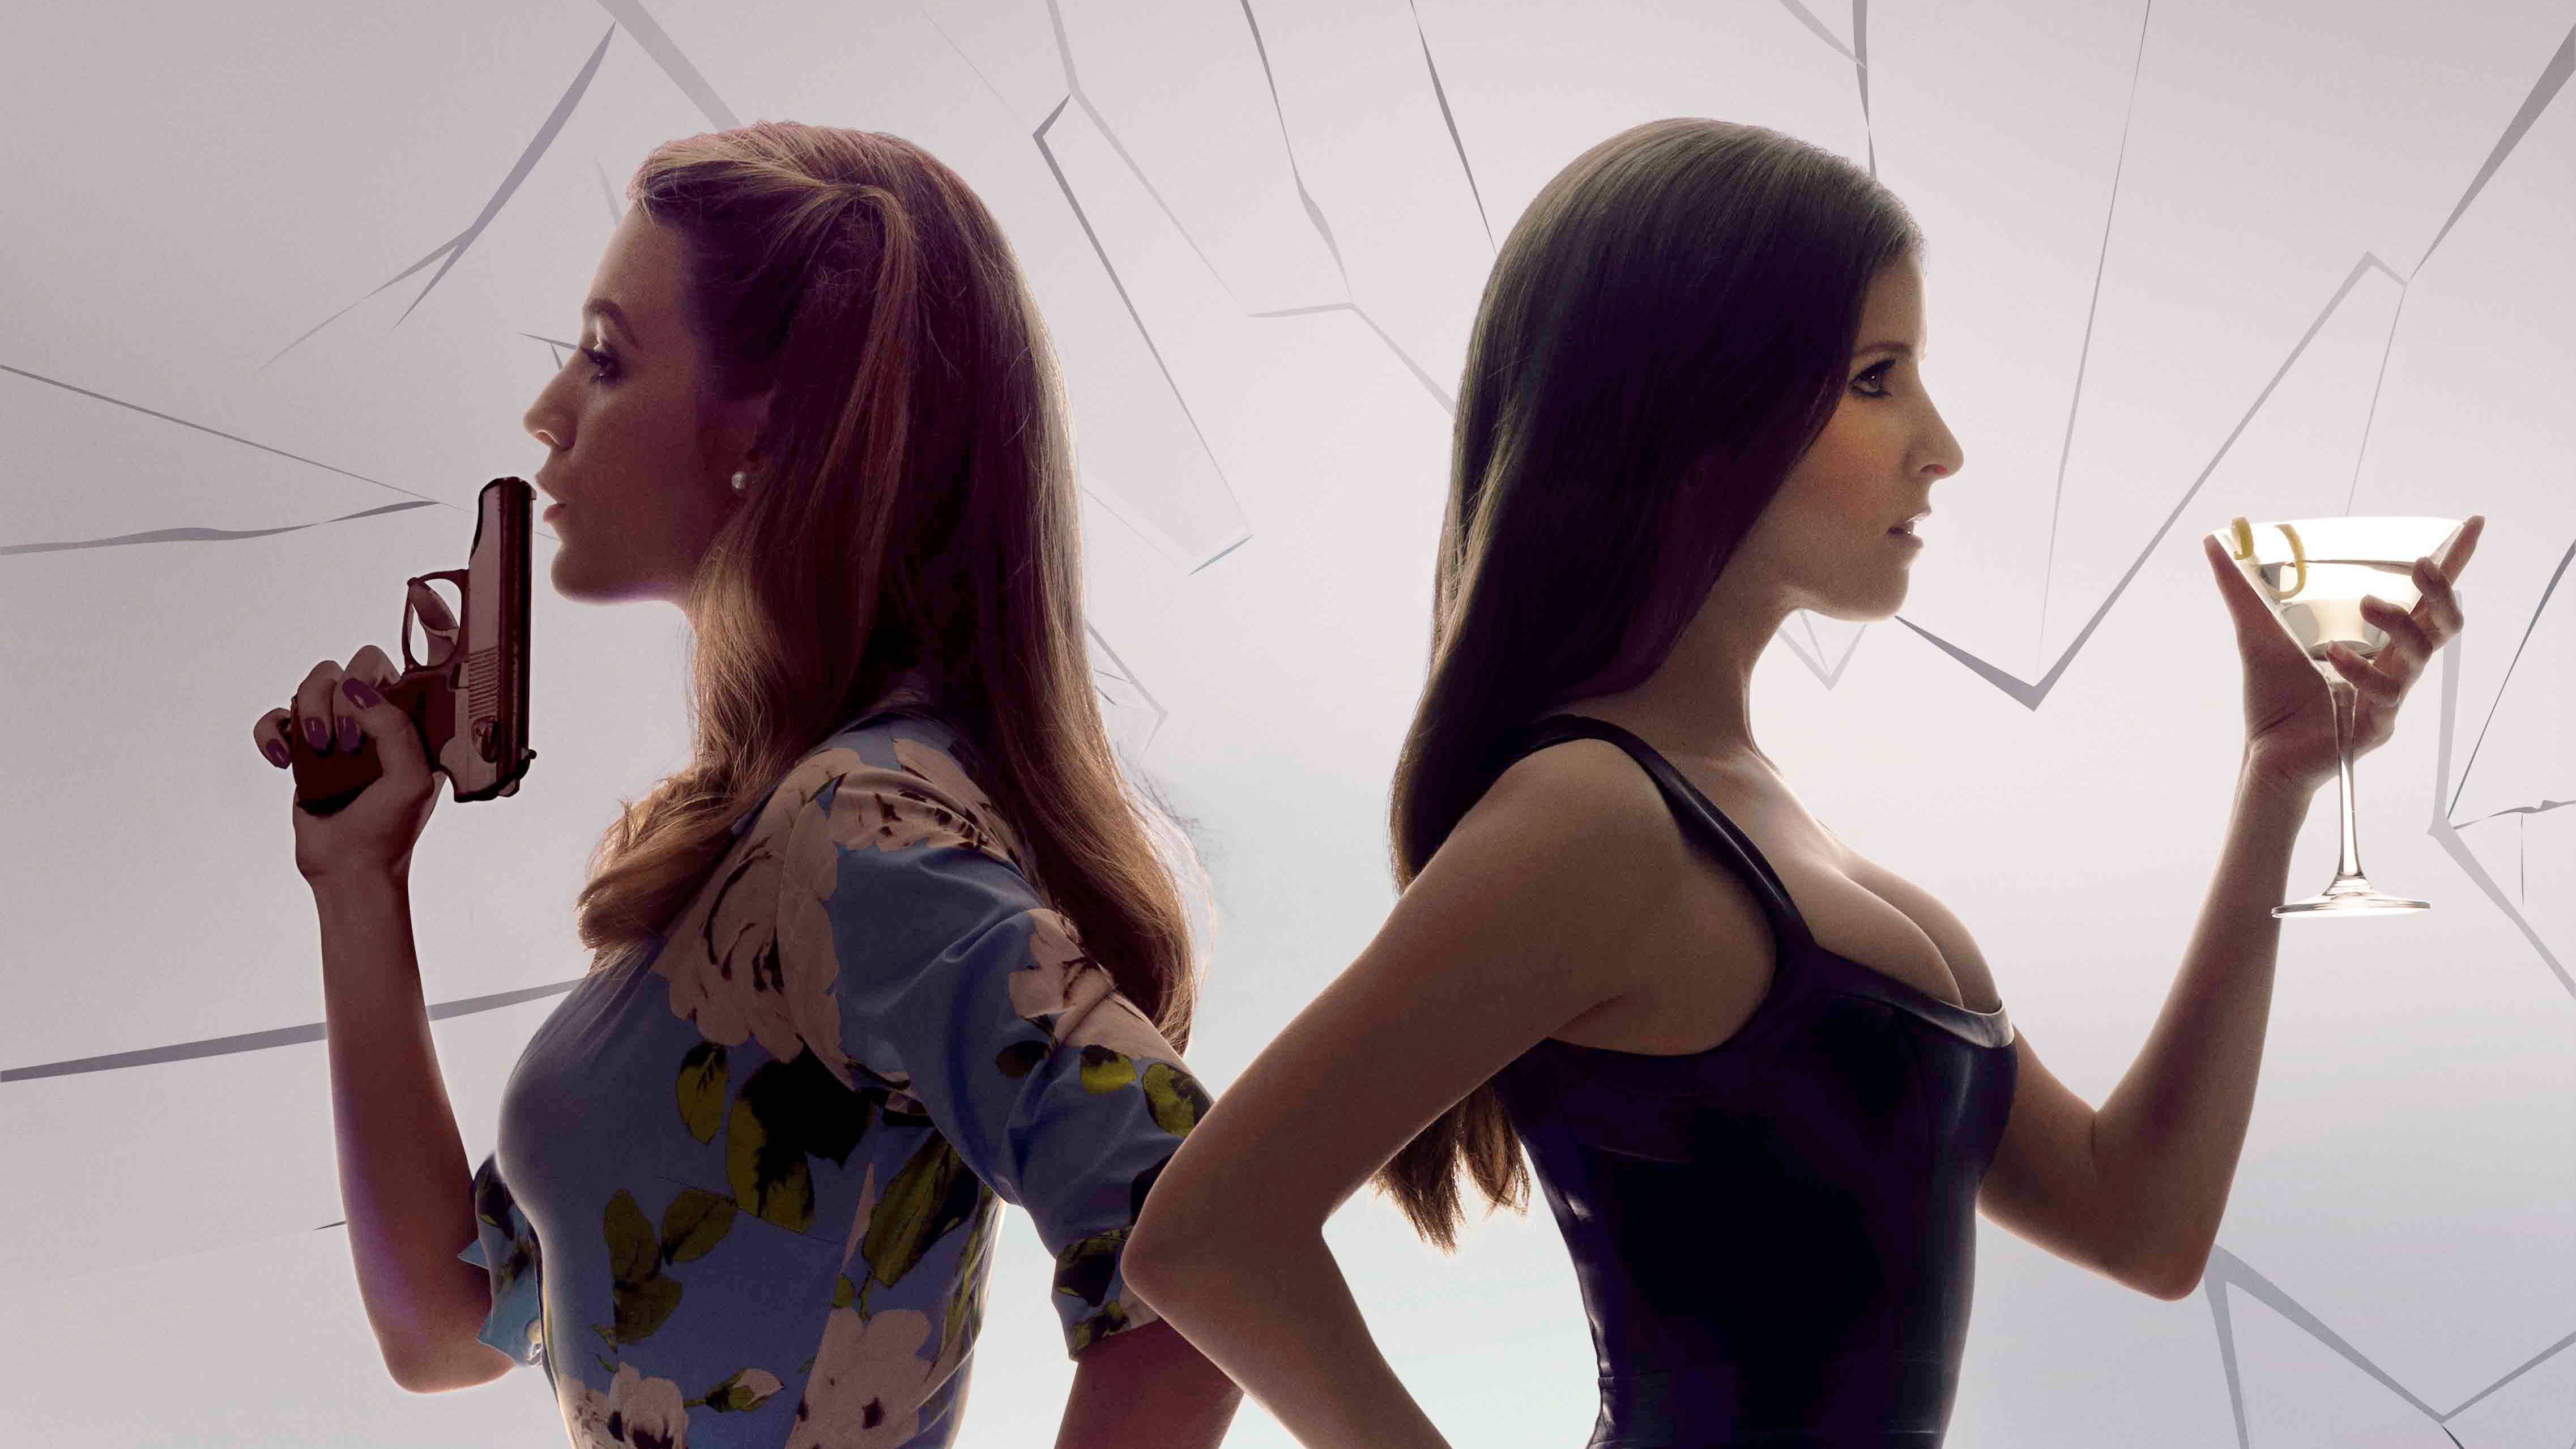 A Simple Favor 2018 Movie 4k, HD Movies, 4k Wallpapers, Images,  Backgrounds, Photos and Pictures